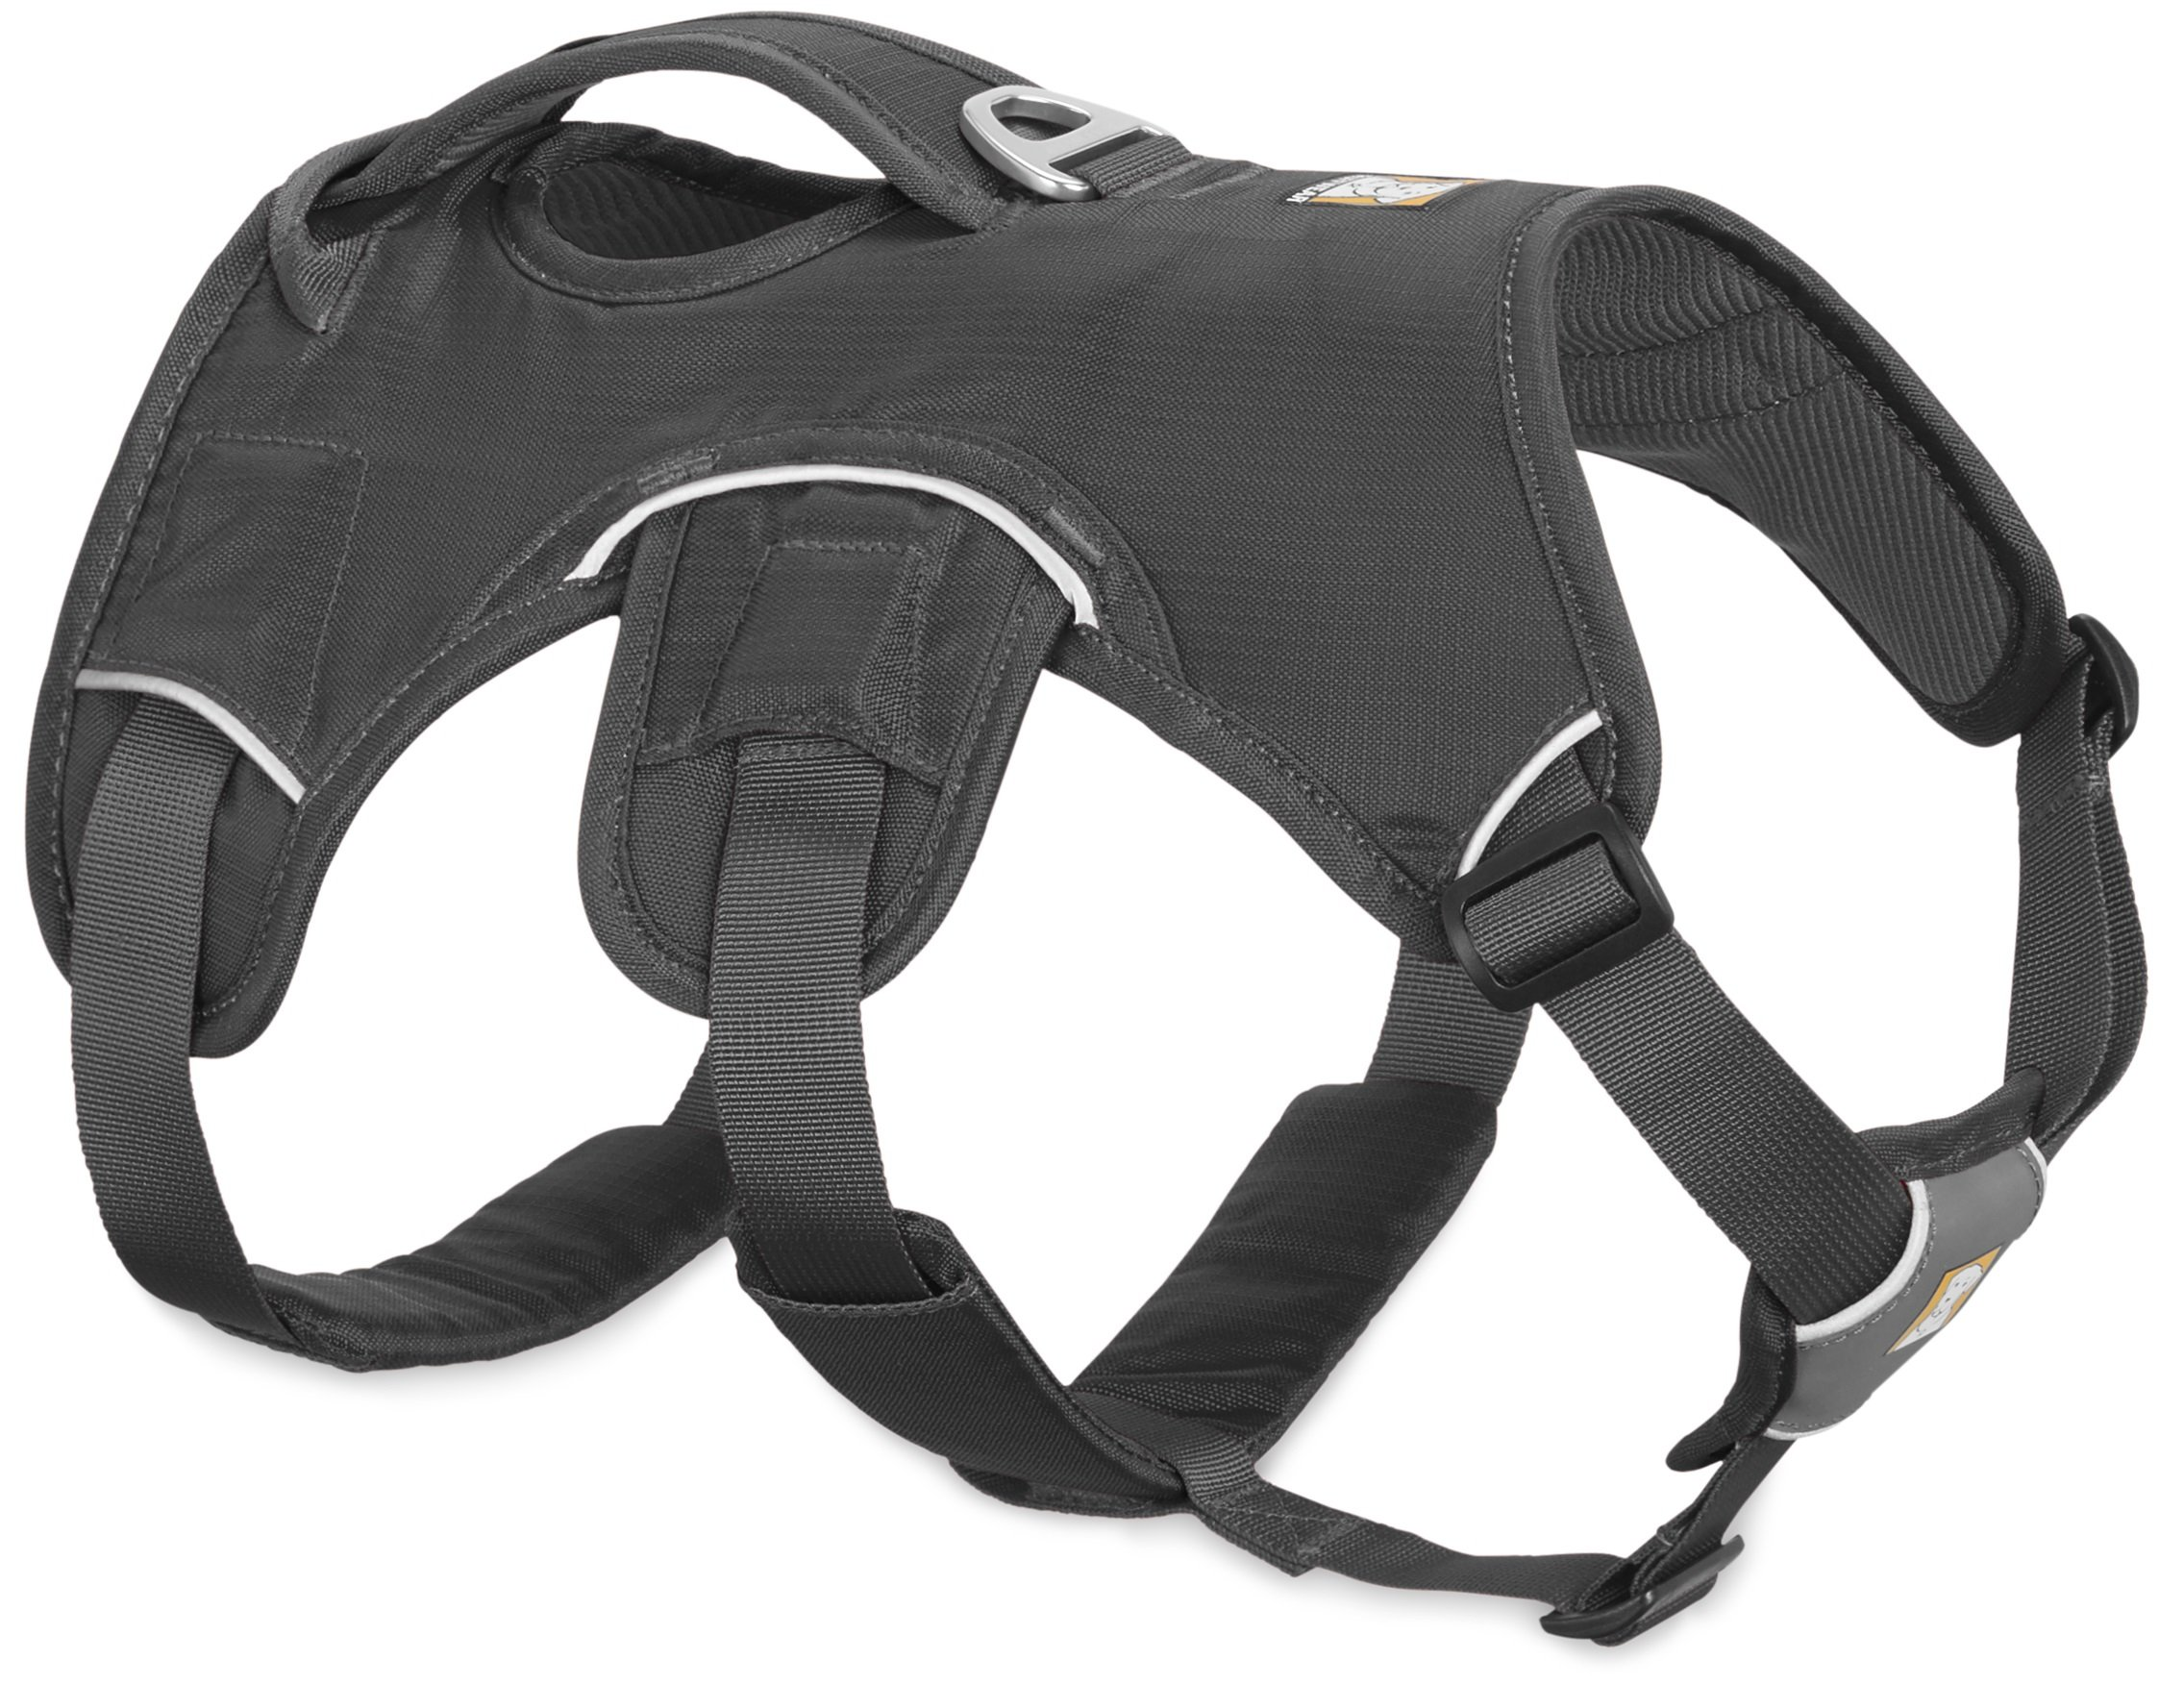 RUFFWEAR NEW 2017 GRAY WEB MASTER DOG HARNESS ♦ SECURE REFLECTIVE SUPPORTIVE MULTI USE ♦ ALL SIZES (Small)